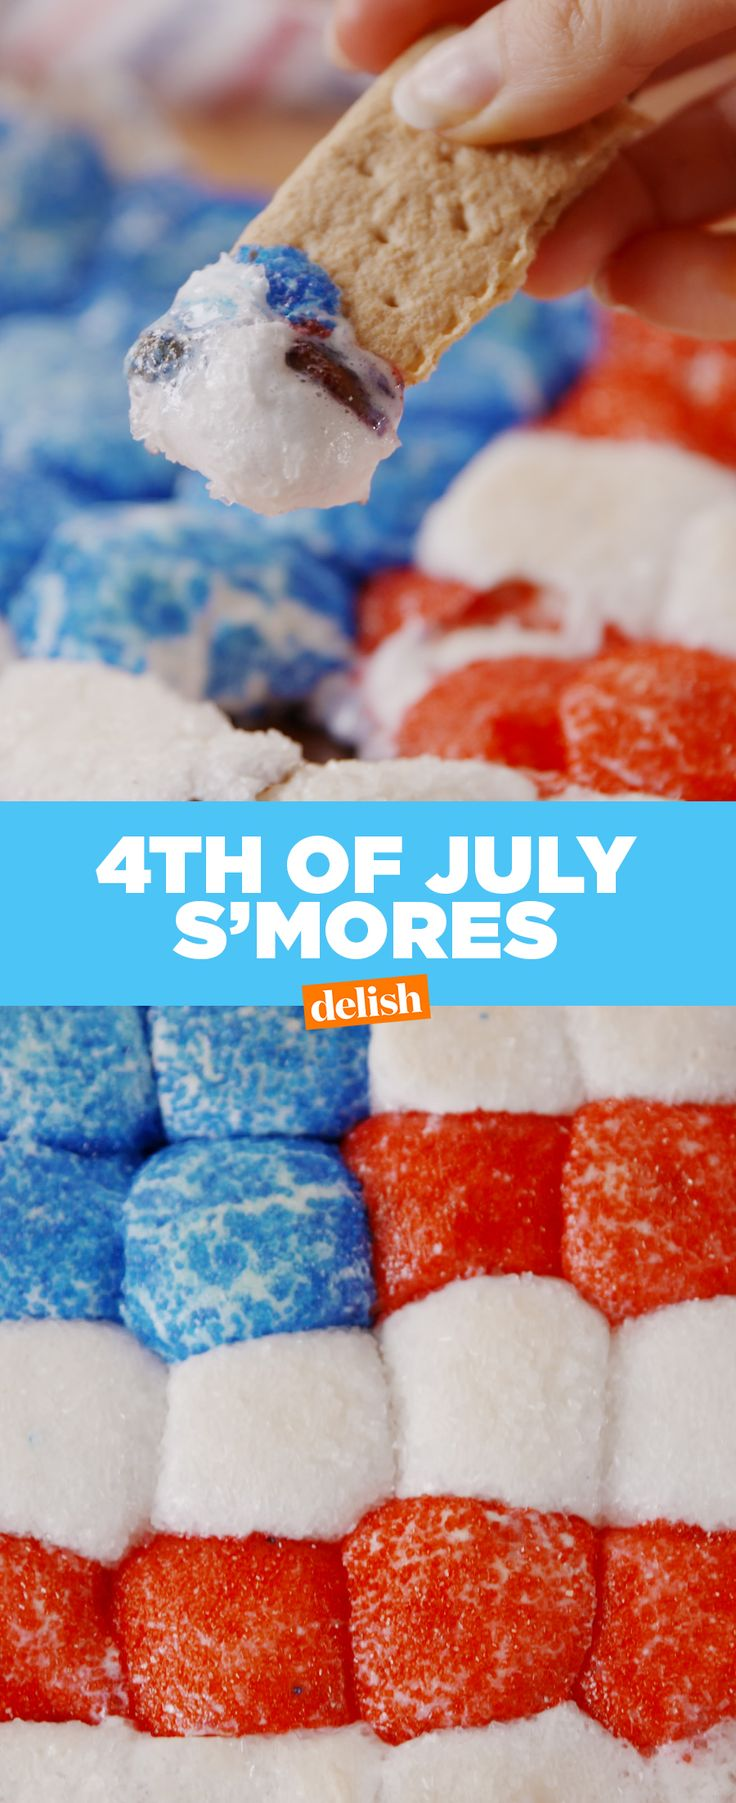 4th Of July S'mores are almost too perfect to eat... ALMOST. Get the recipe at Delish.com.